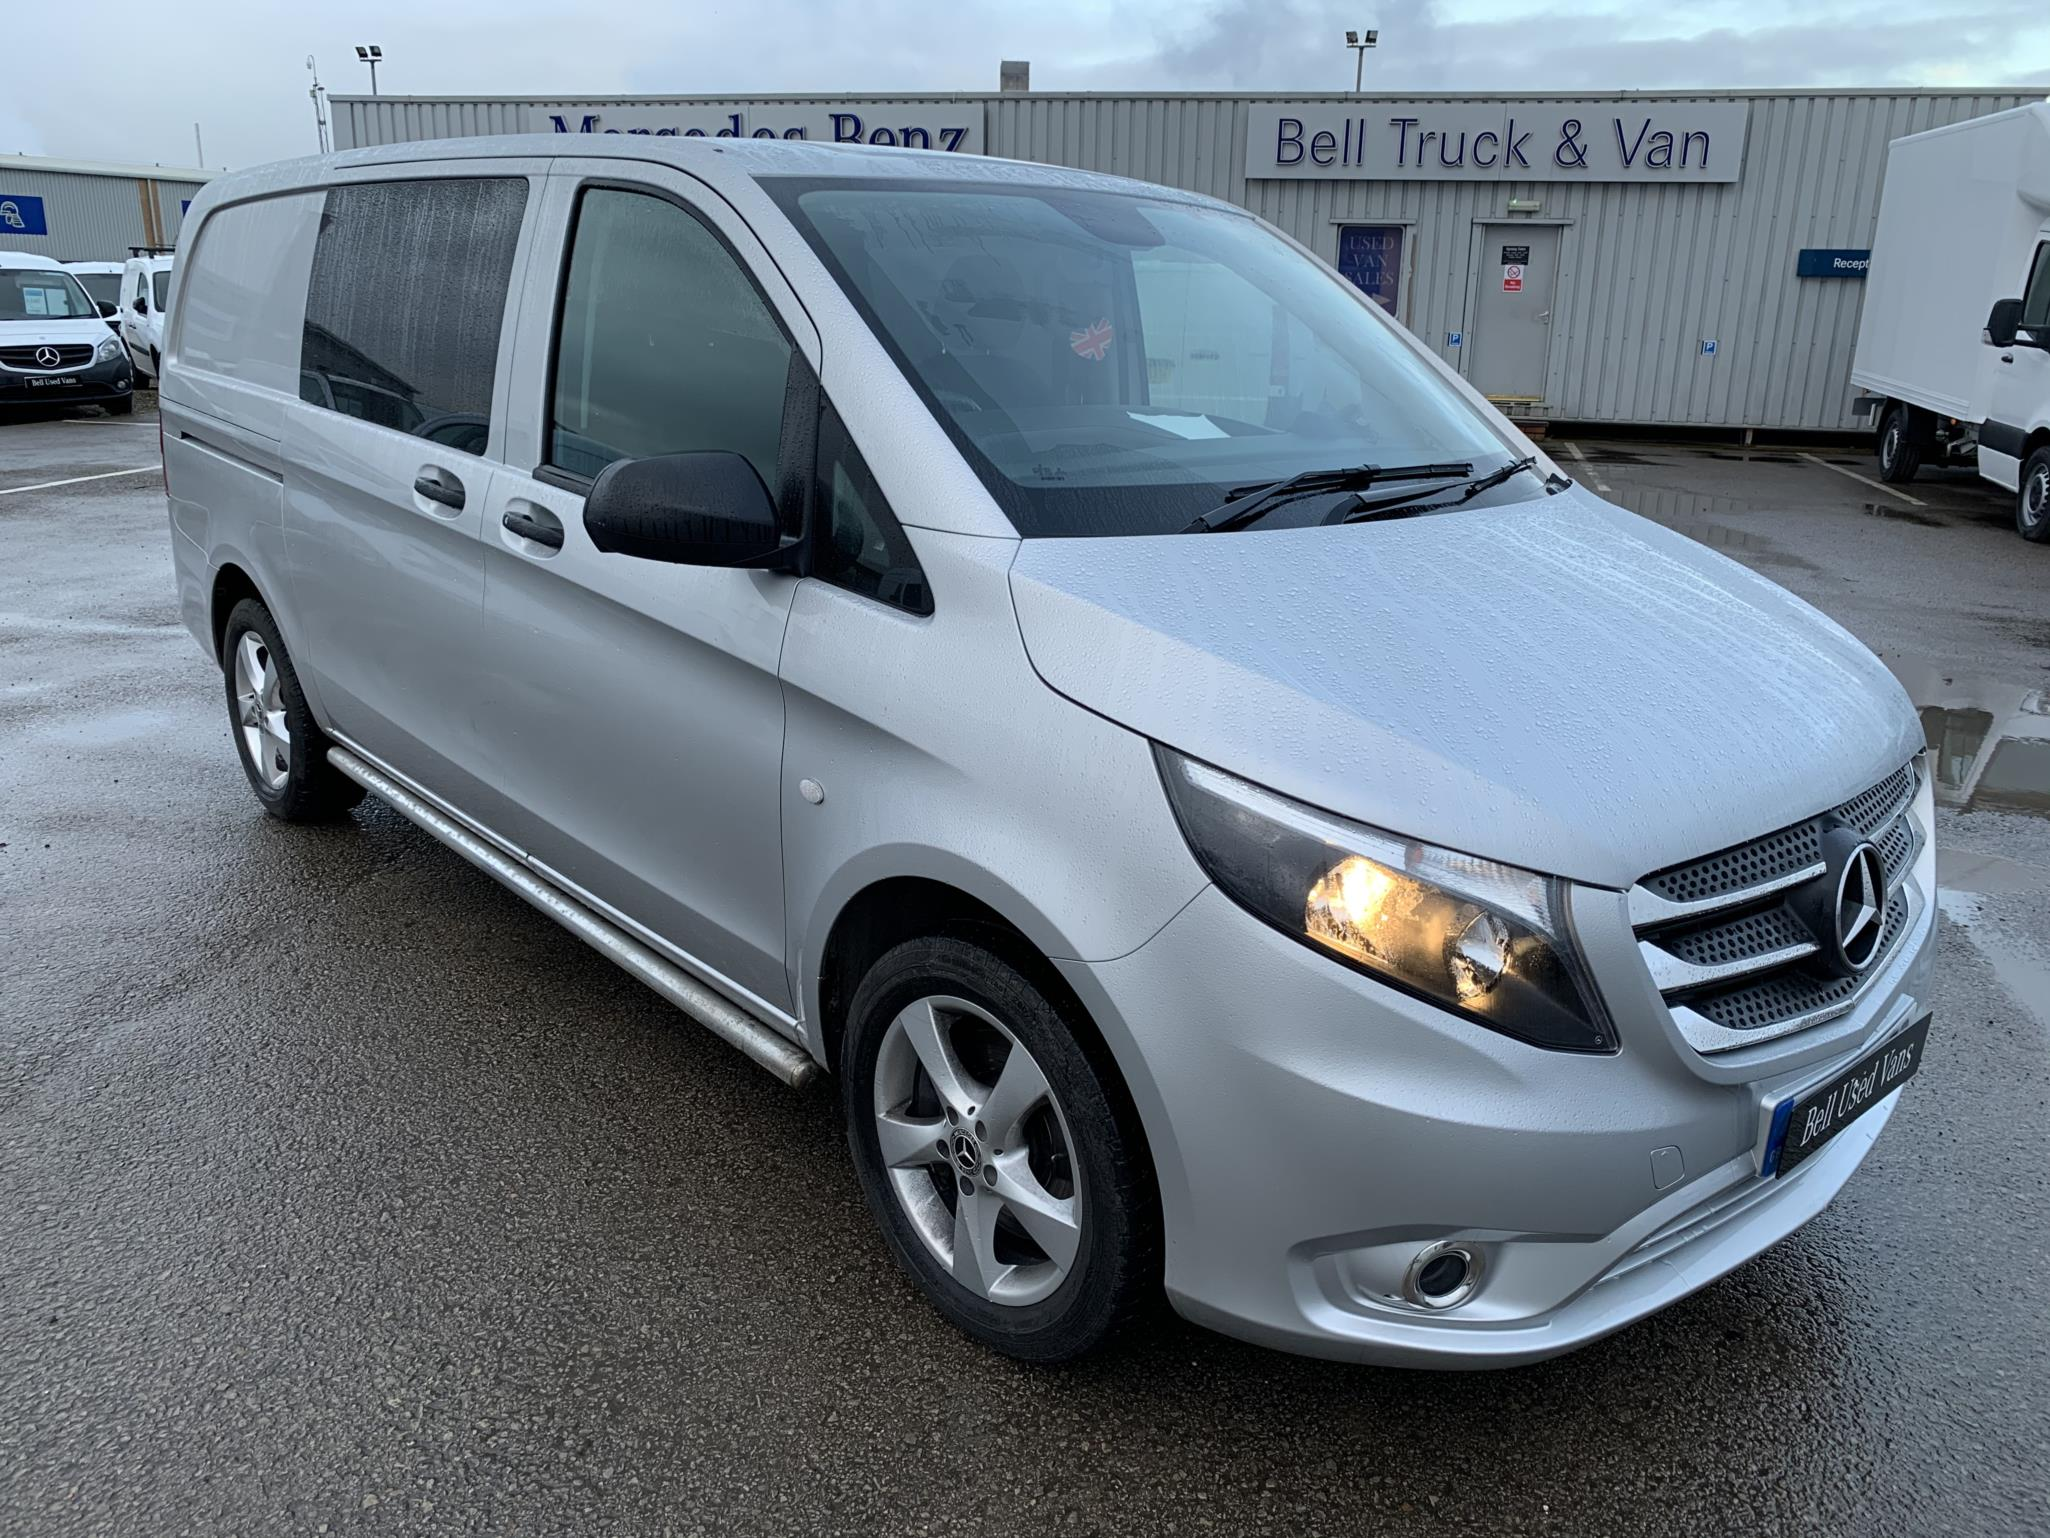 Mercedes-Benz Vito 119 BlueTEC Crew Van  (copy #4923)